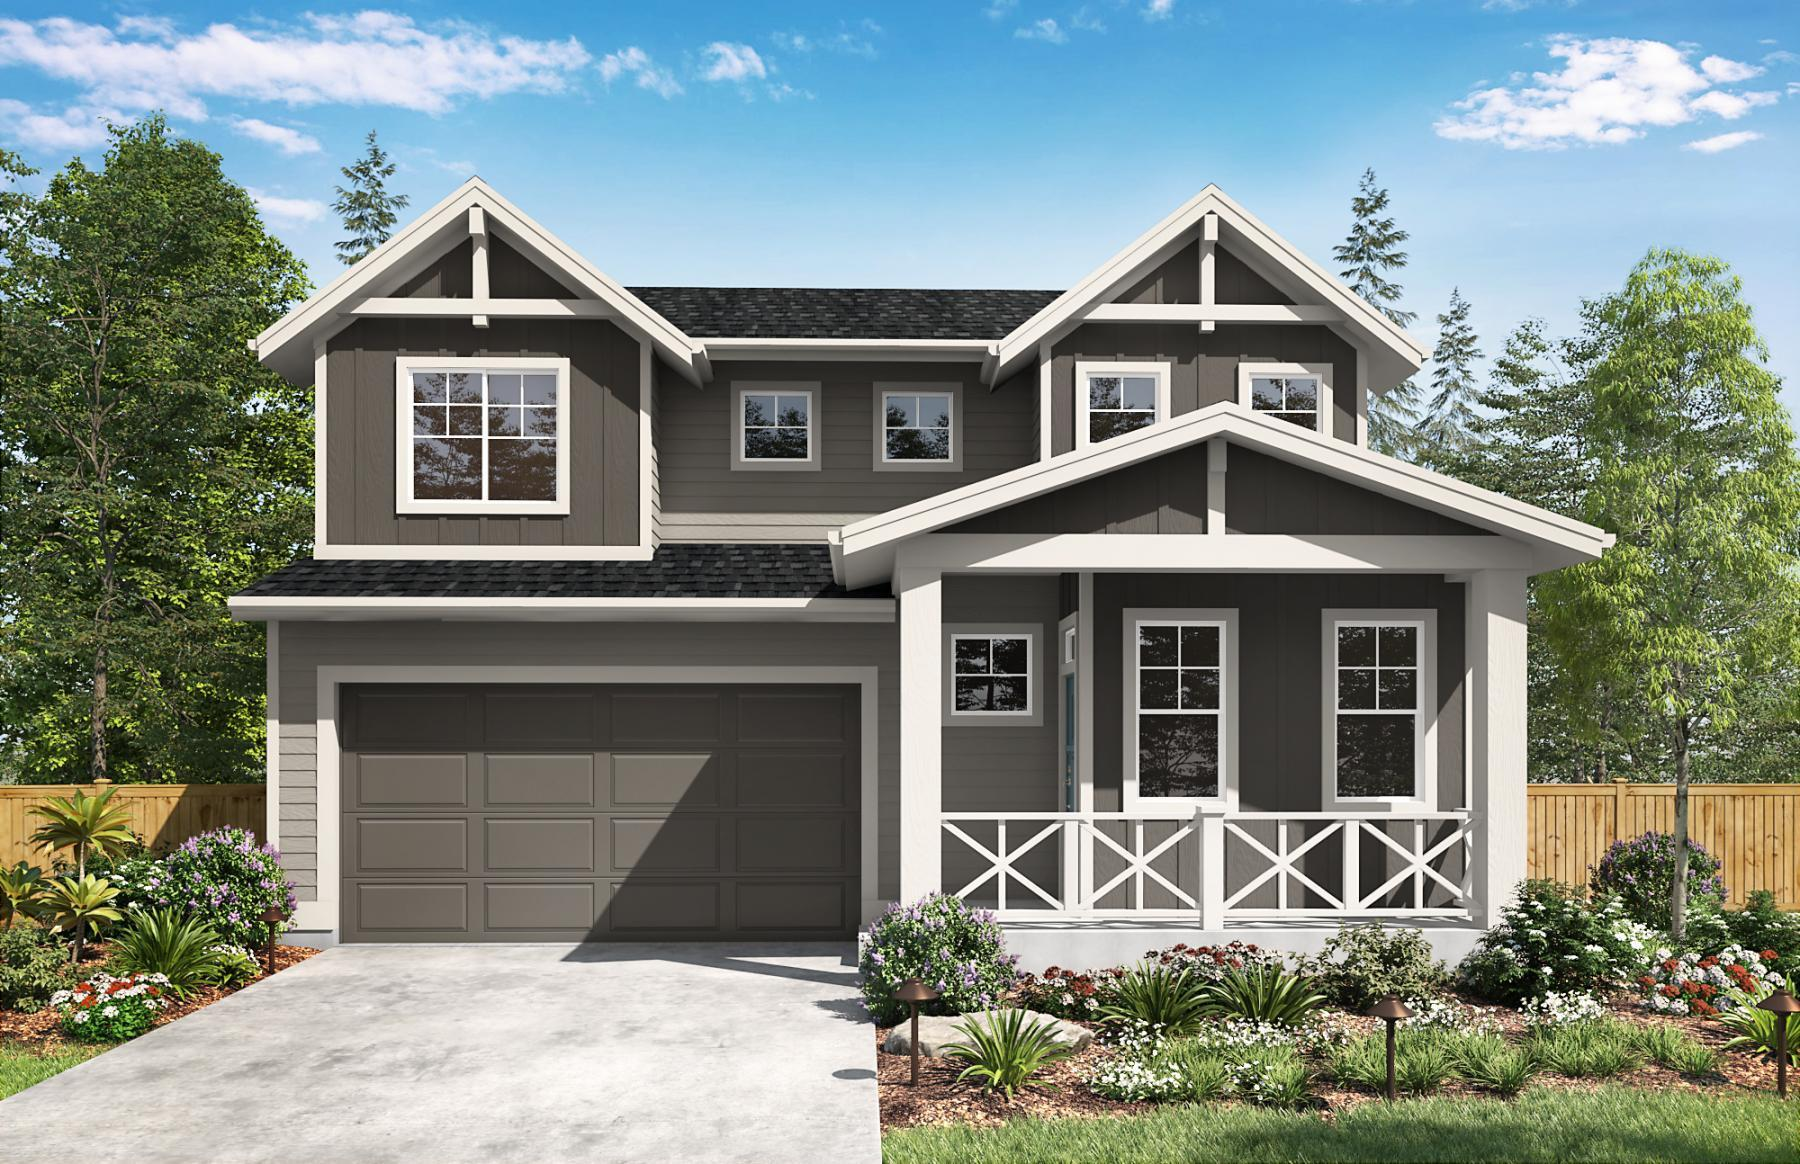 Exterior featured in the Anderson By Sager Family Homes in Tacoma, WA